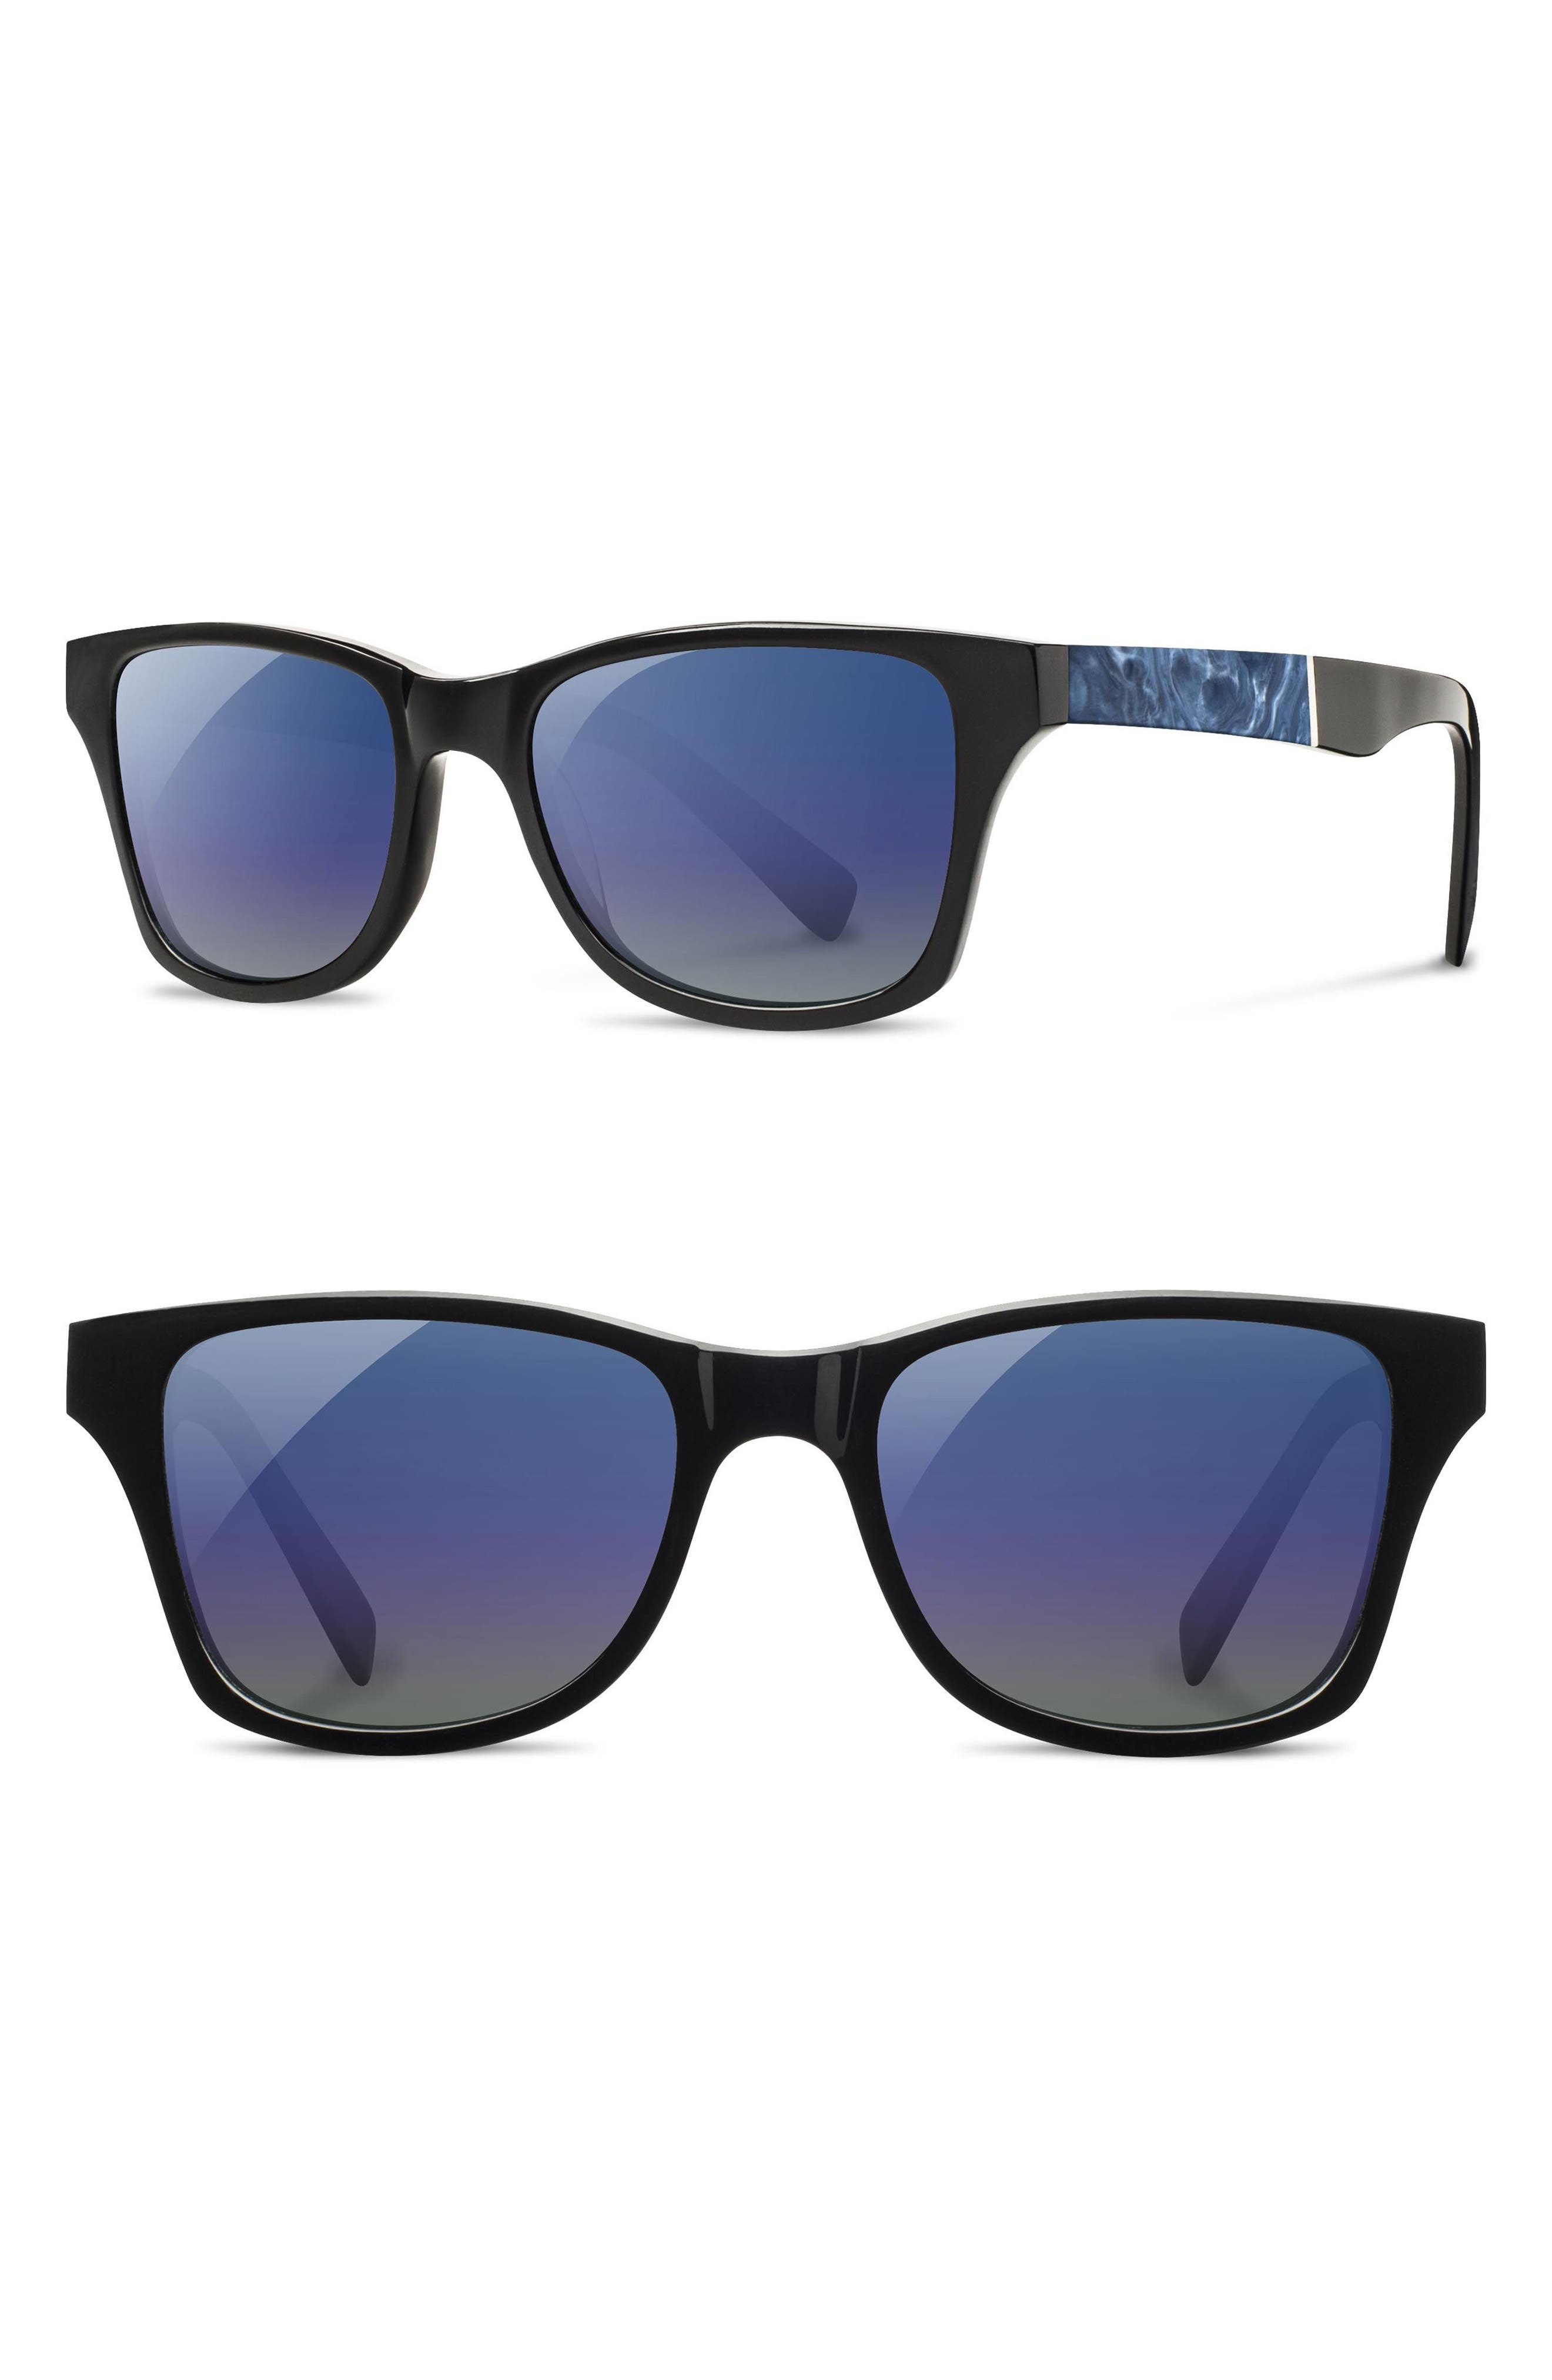 'Canby' 53mm Polarized Sunglasses,                         Main,                         color, Black/ Surf Resin/ Blue